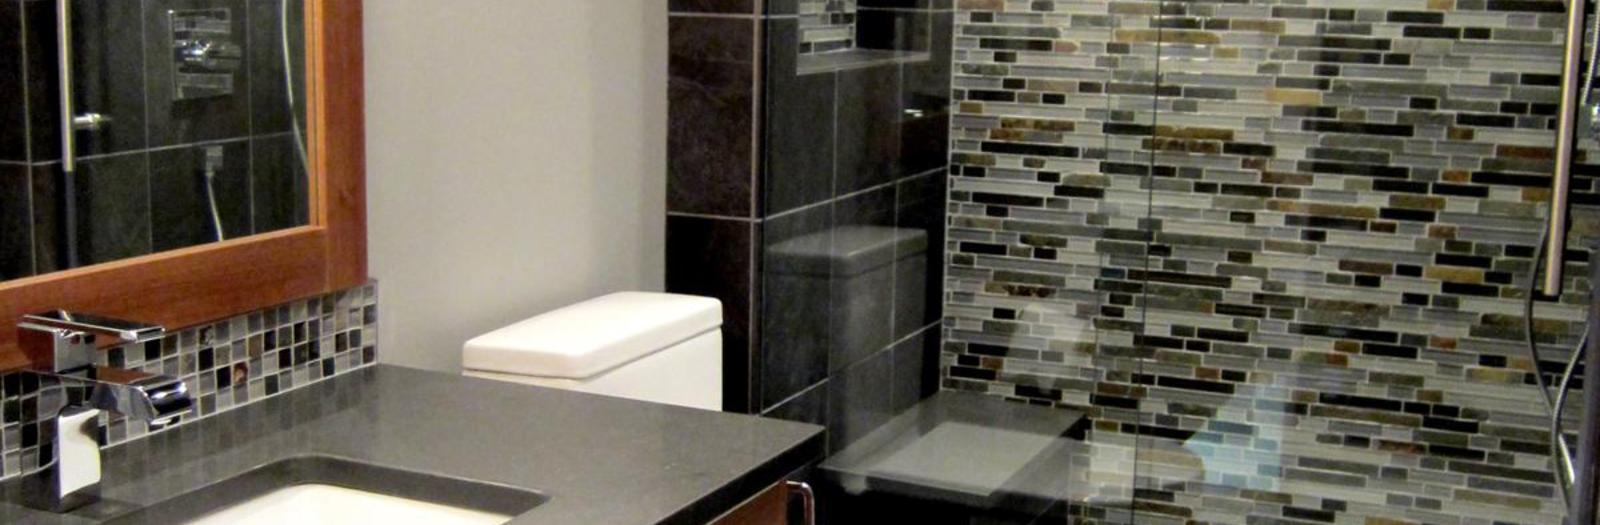 Contemporary Bathroom with sliding barn glass shower door